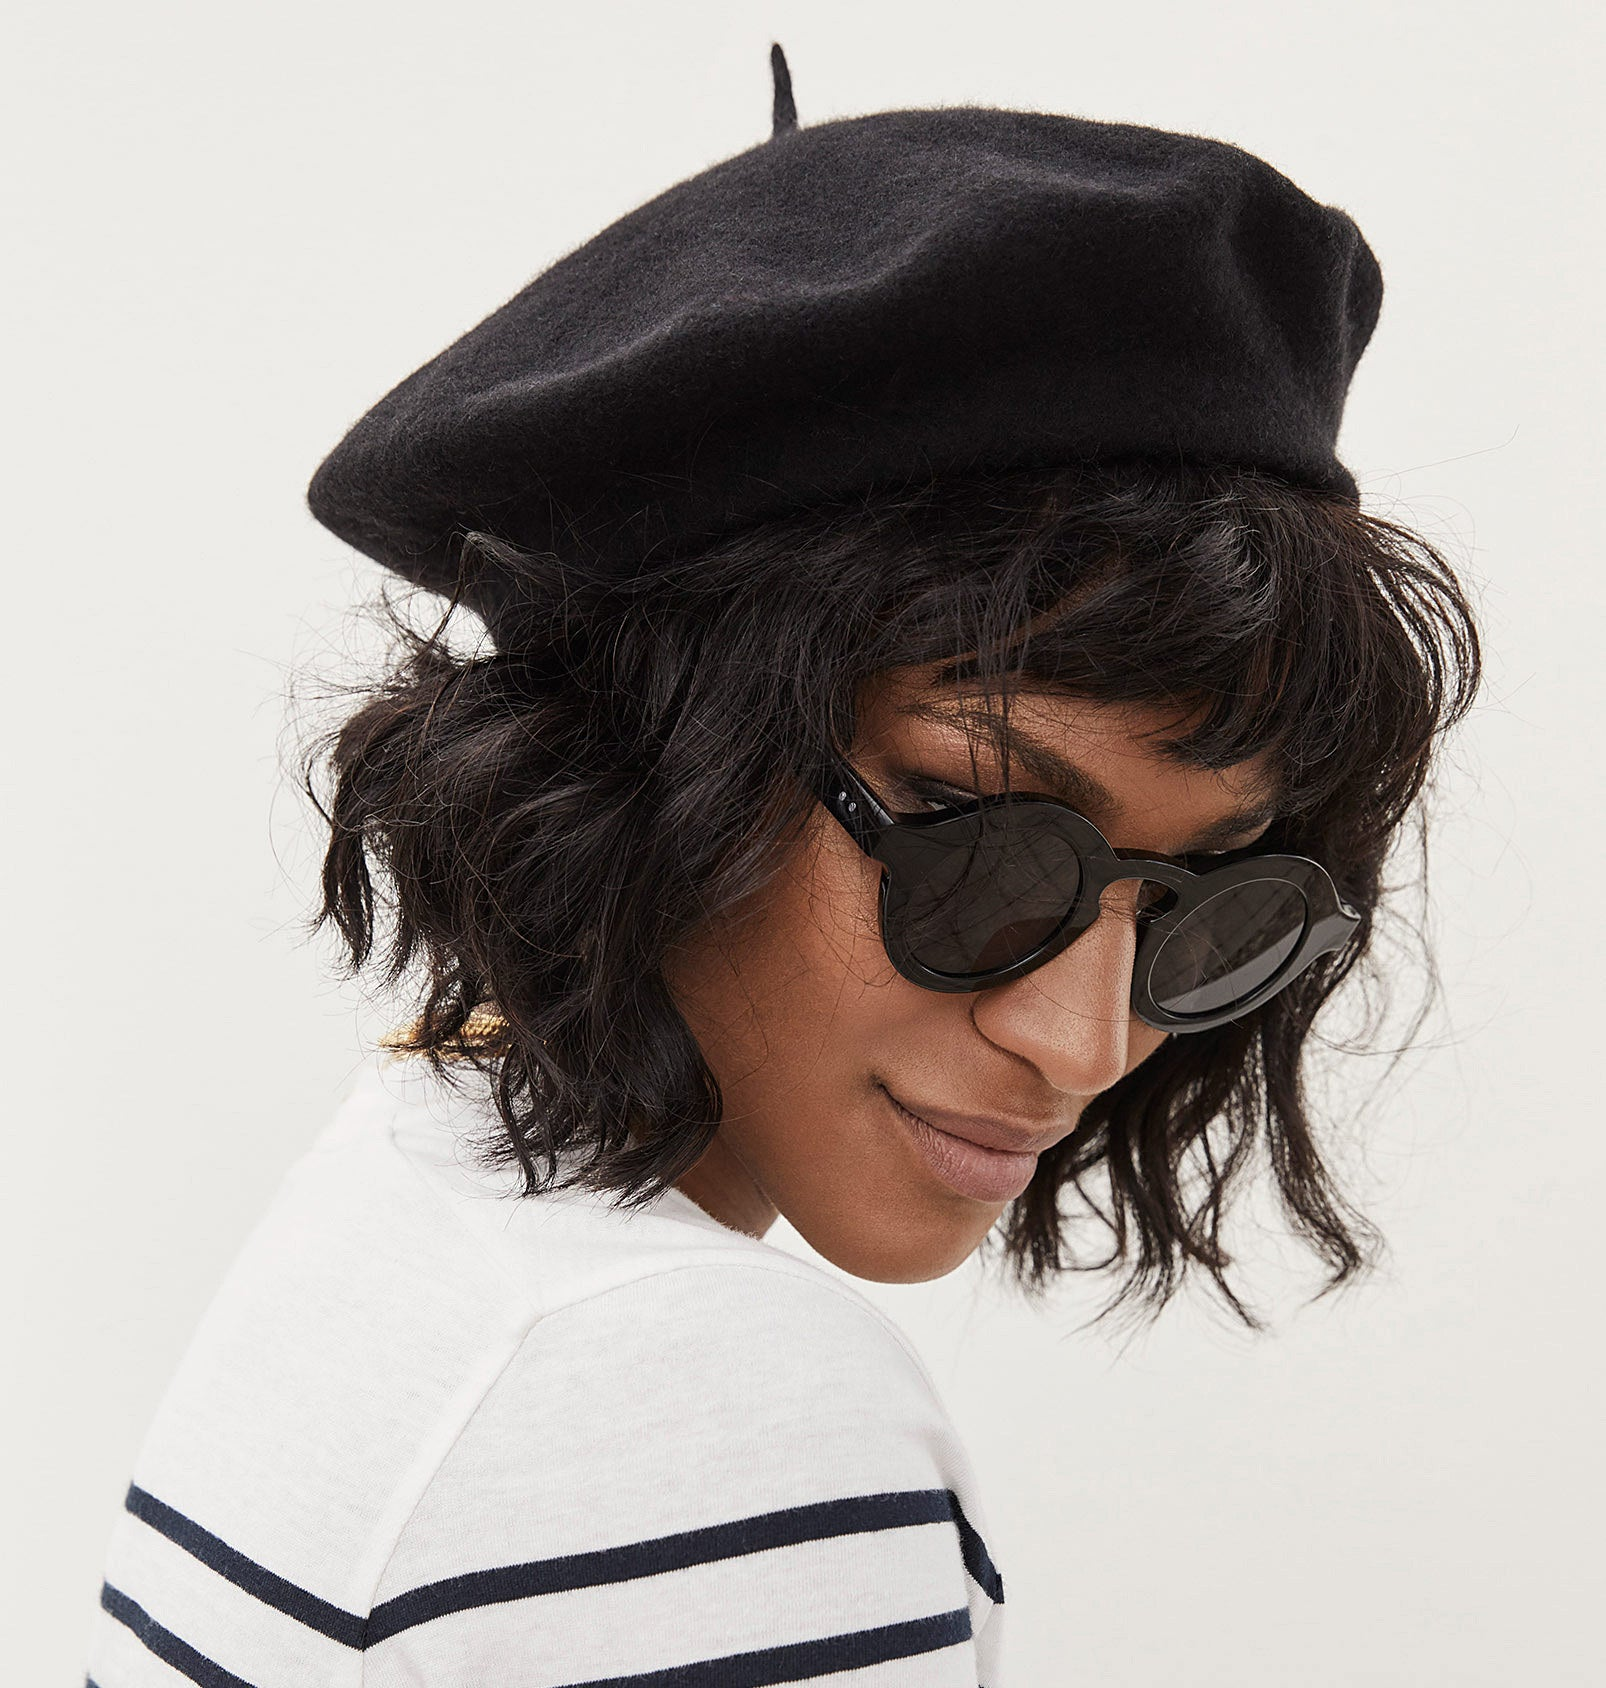 A person wearing the beret and sunglasses